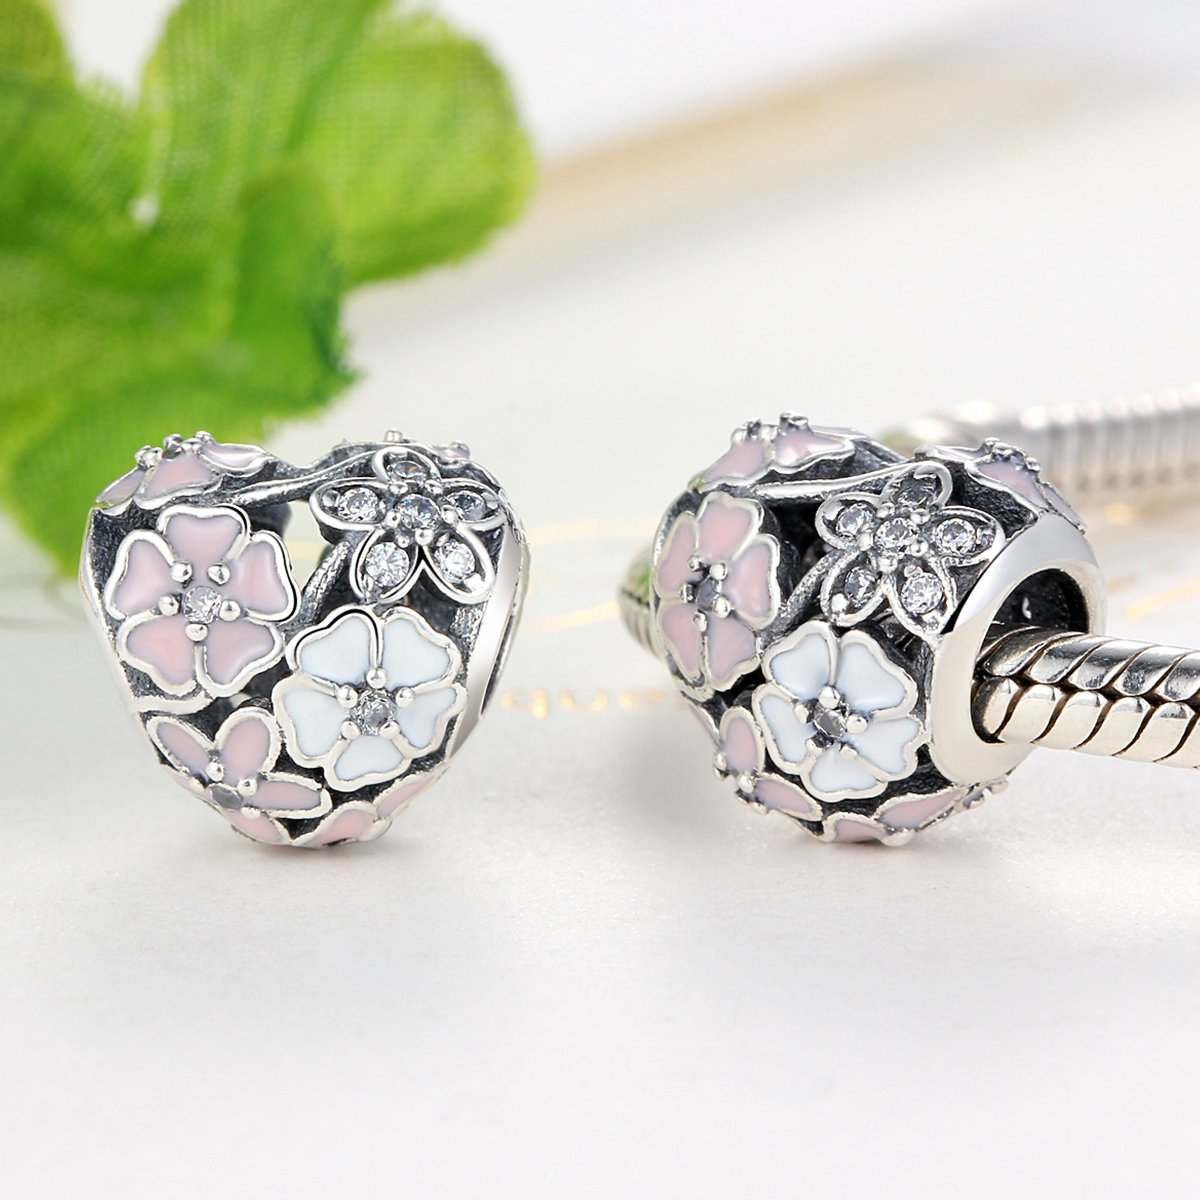 BAMOER 925 Sterling Silver Poetic Daisy Flower Heart Enameled CZ Solid Charms Beads for DIY Bracelet Accessories by BAMOER (Image #4)